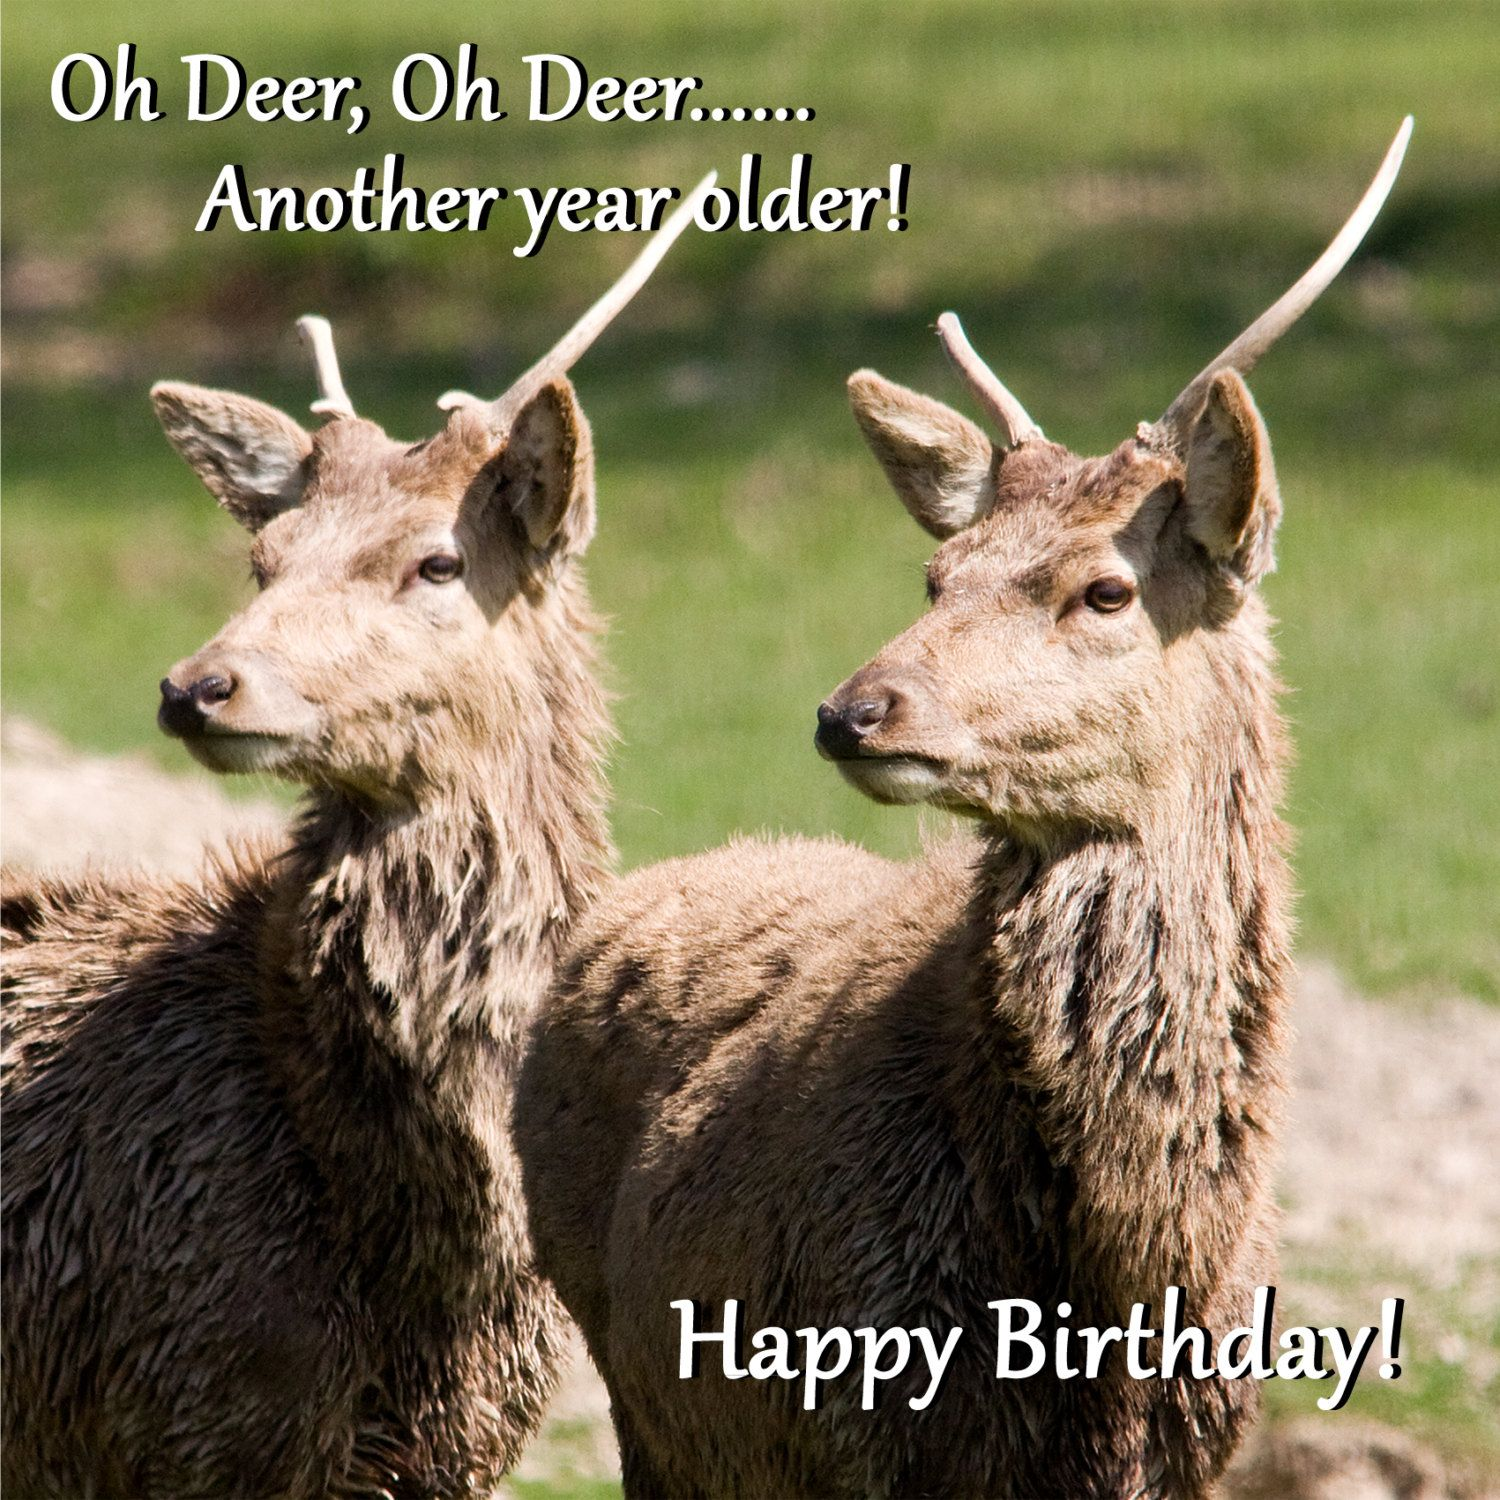 Birthday Card Oh Deer Another Year Older Funny Deer Photo Blank Greeting Card From Original Photograph By Funny Deer Deer Photos Happy Birthday Greeting Card